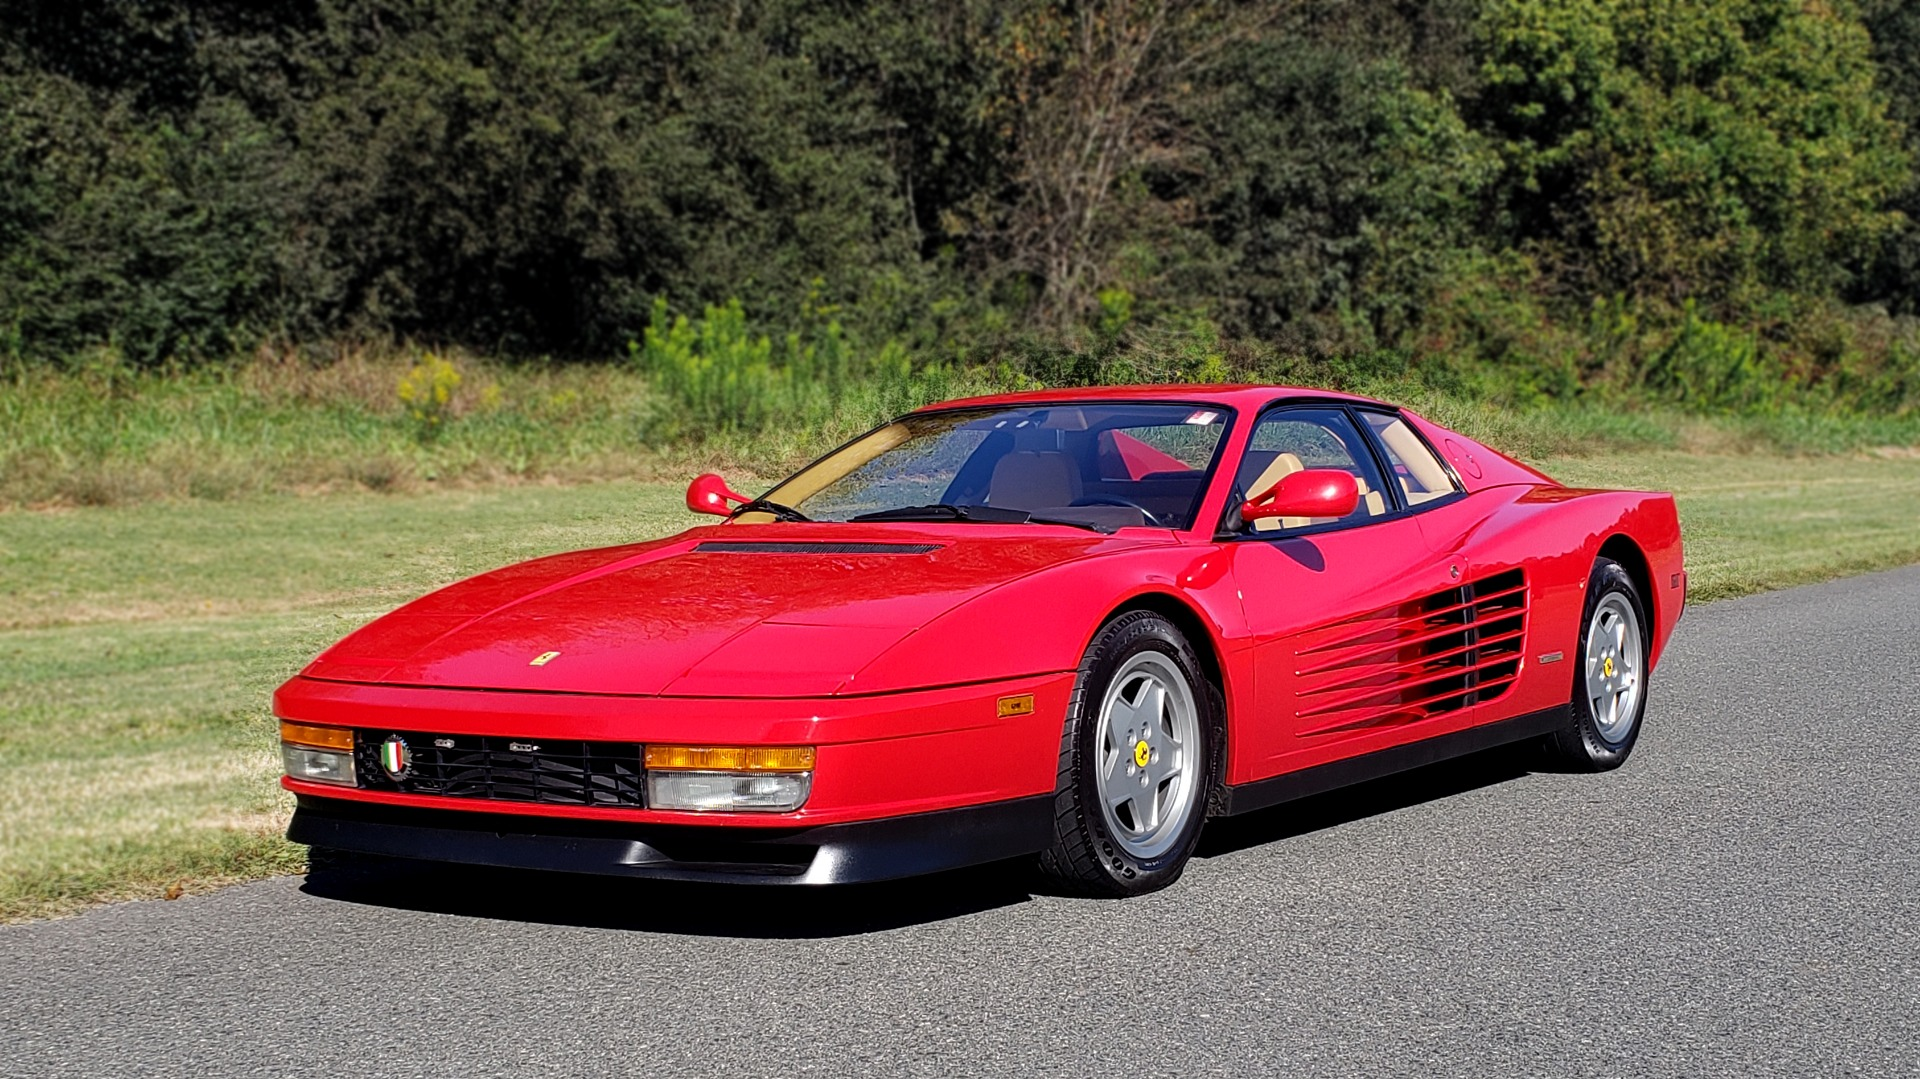 Used 1988 Ferrari TESTAROSSA COUPE / 4.9L FLAT-12 / 5-SPEED MANUAL / LOW MILES SUPER CLEAN for sale $128,999 at Formula Imports in Charlotte NC 28227 1